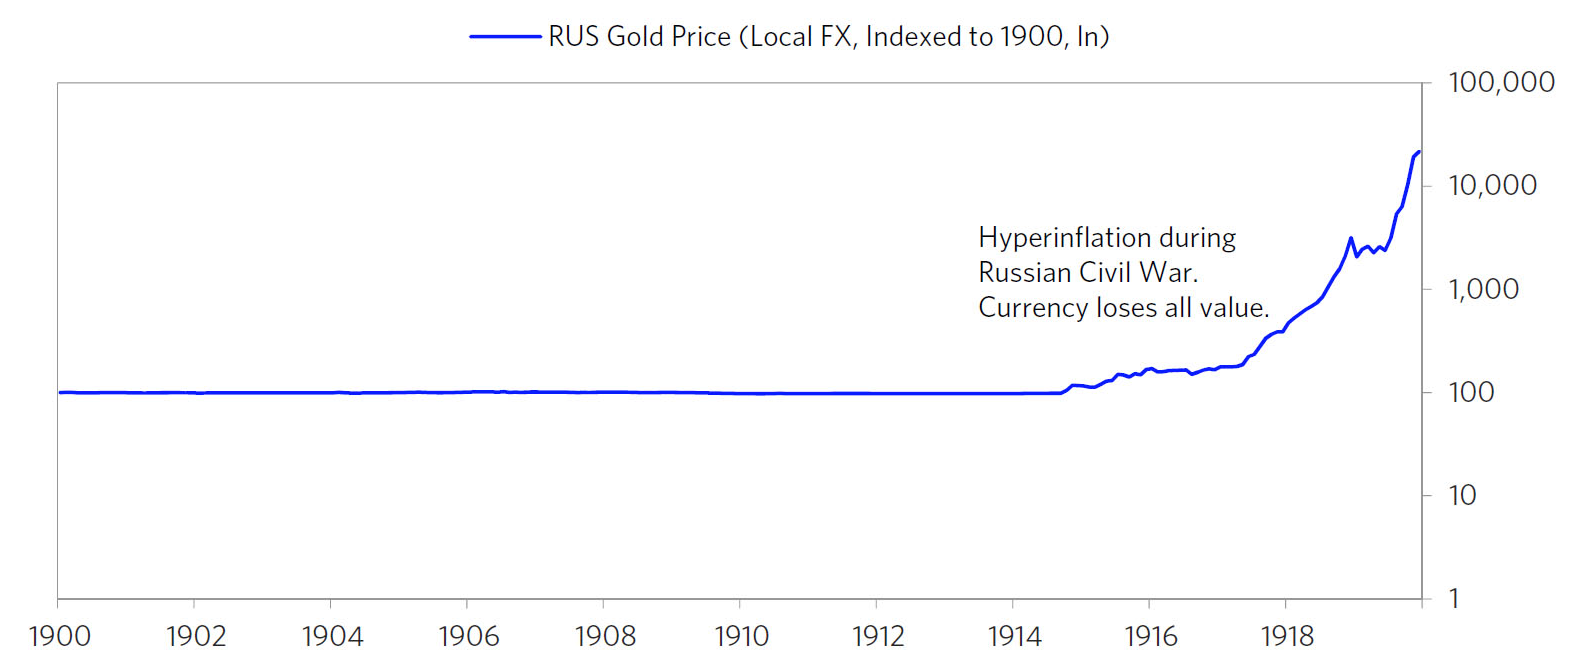 Russia Gold Price 1900 - 1918